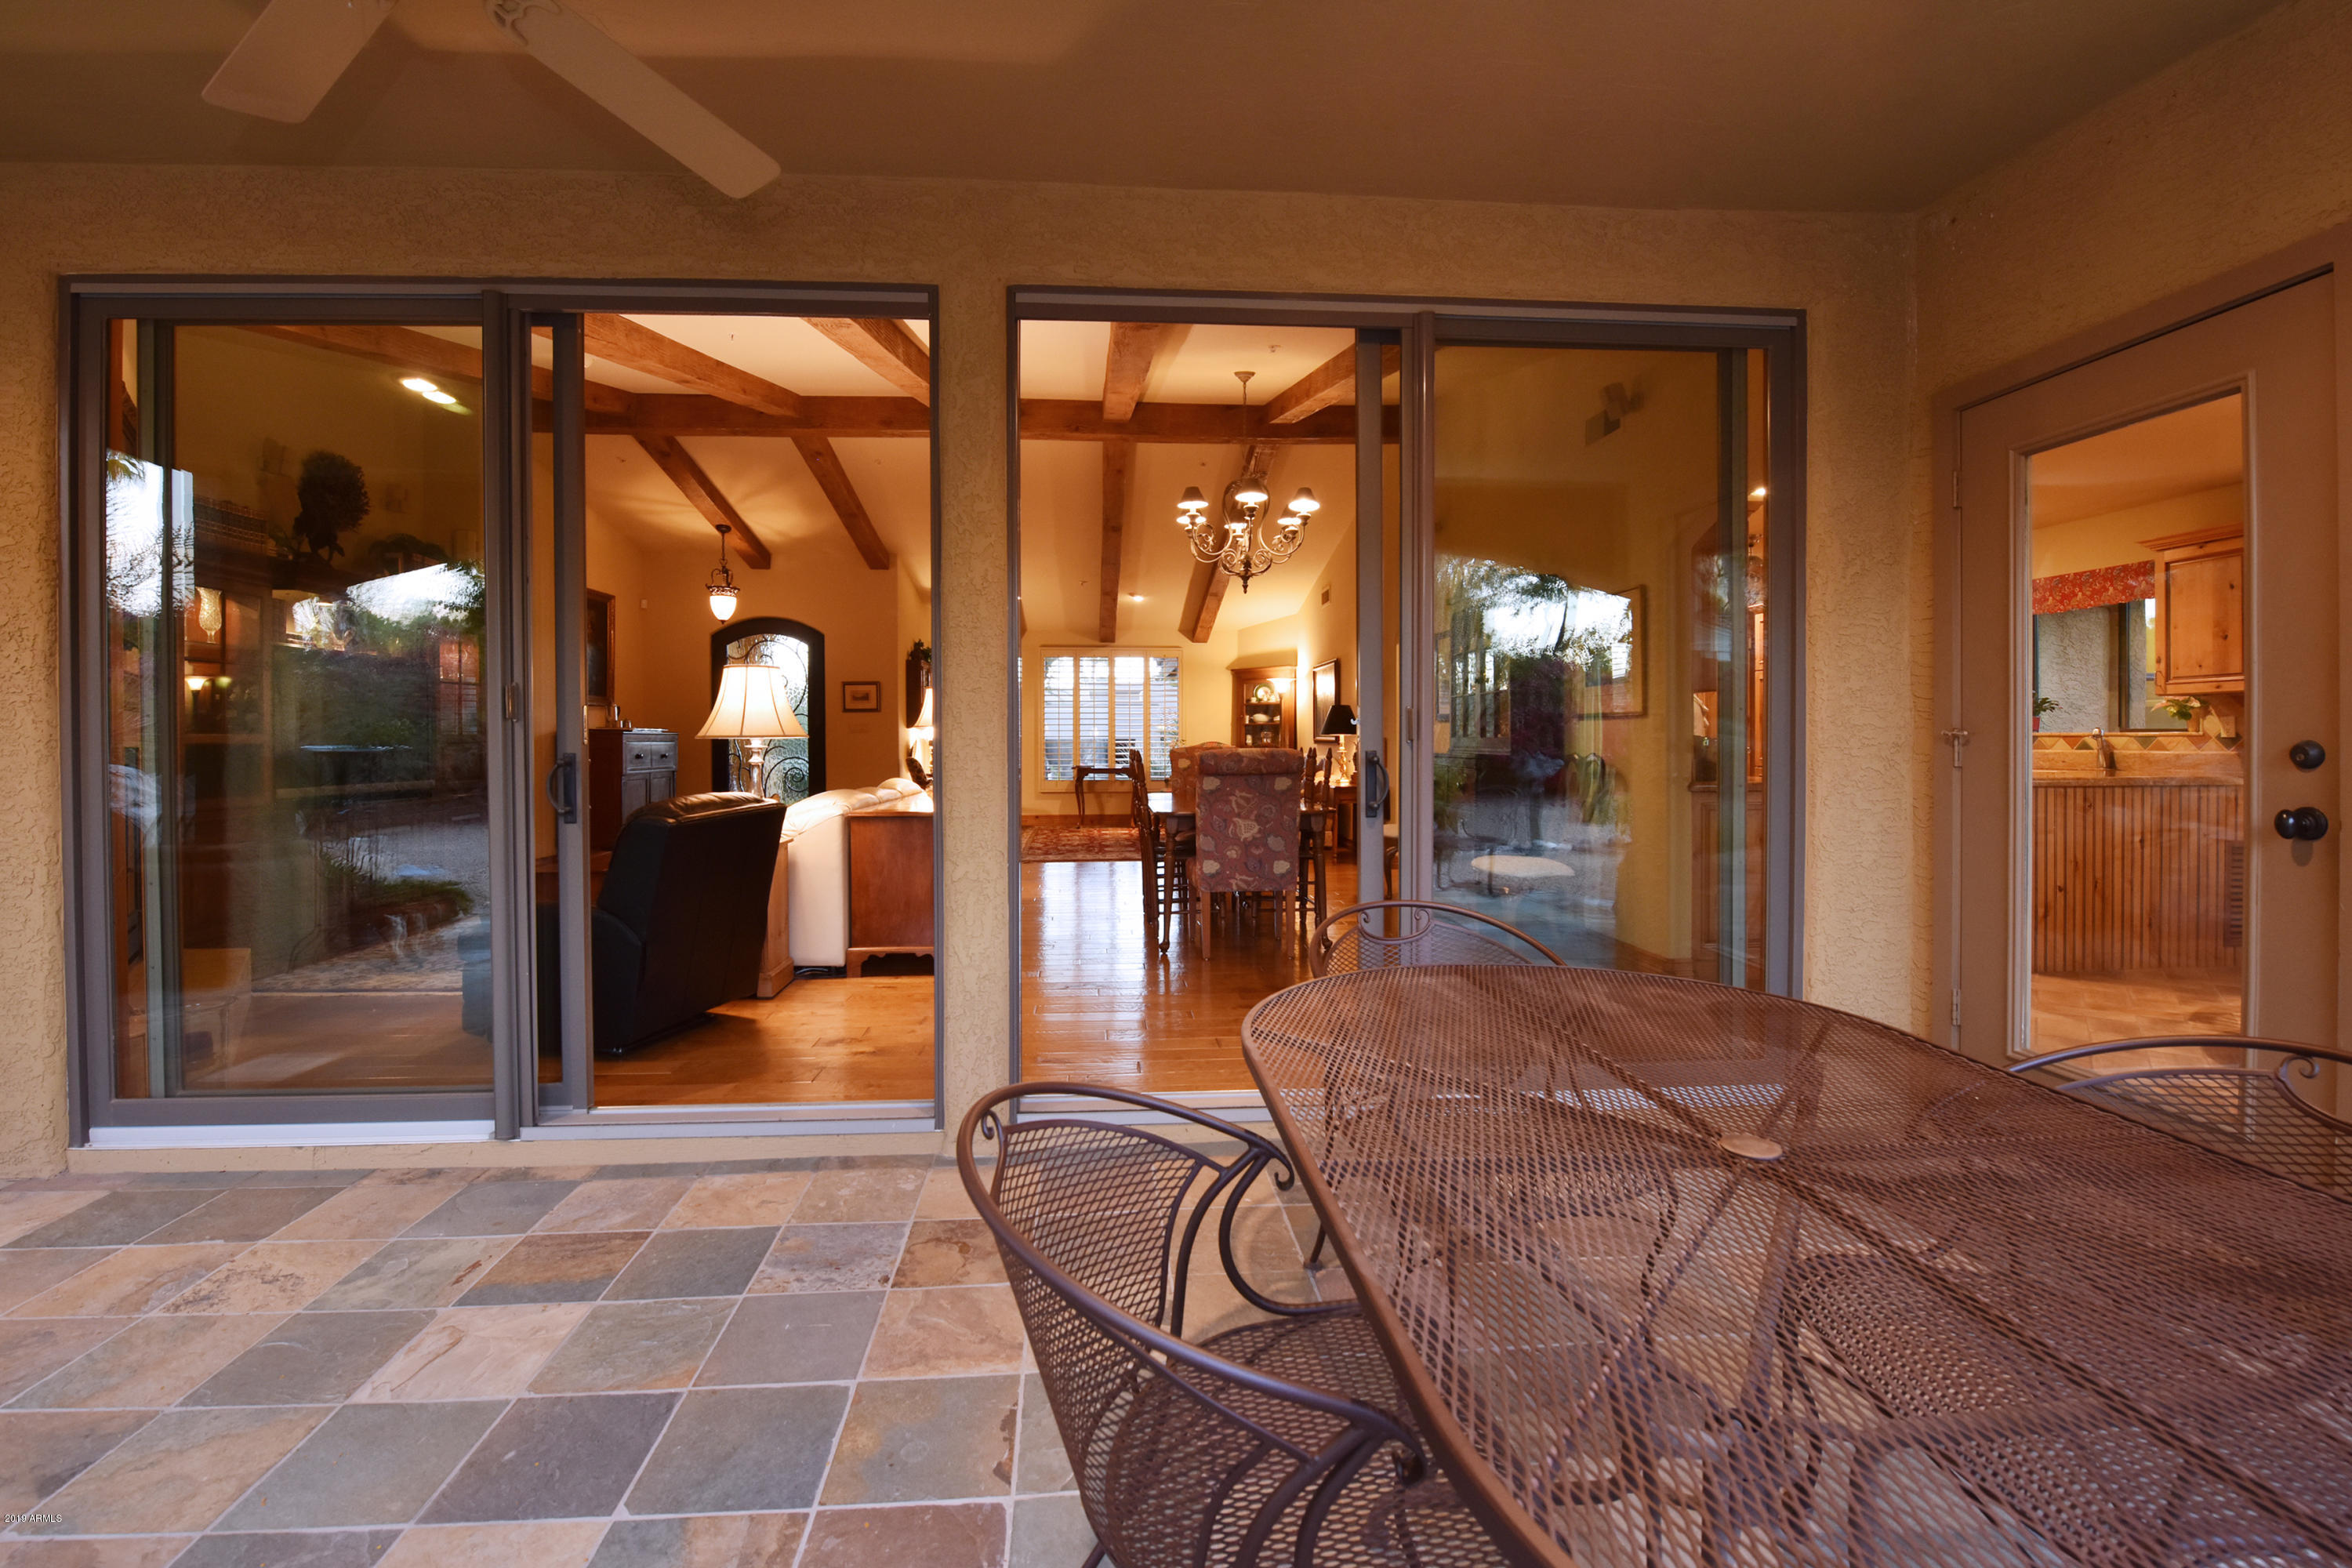 MLS 5866396 8634 E CLUBHOUSE Way, Scottsdale, AZ 85255 Scottsdale AZ Pinnacle Peak Country Club